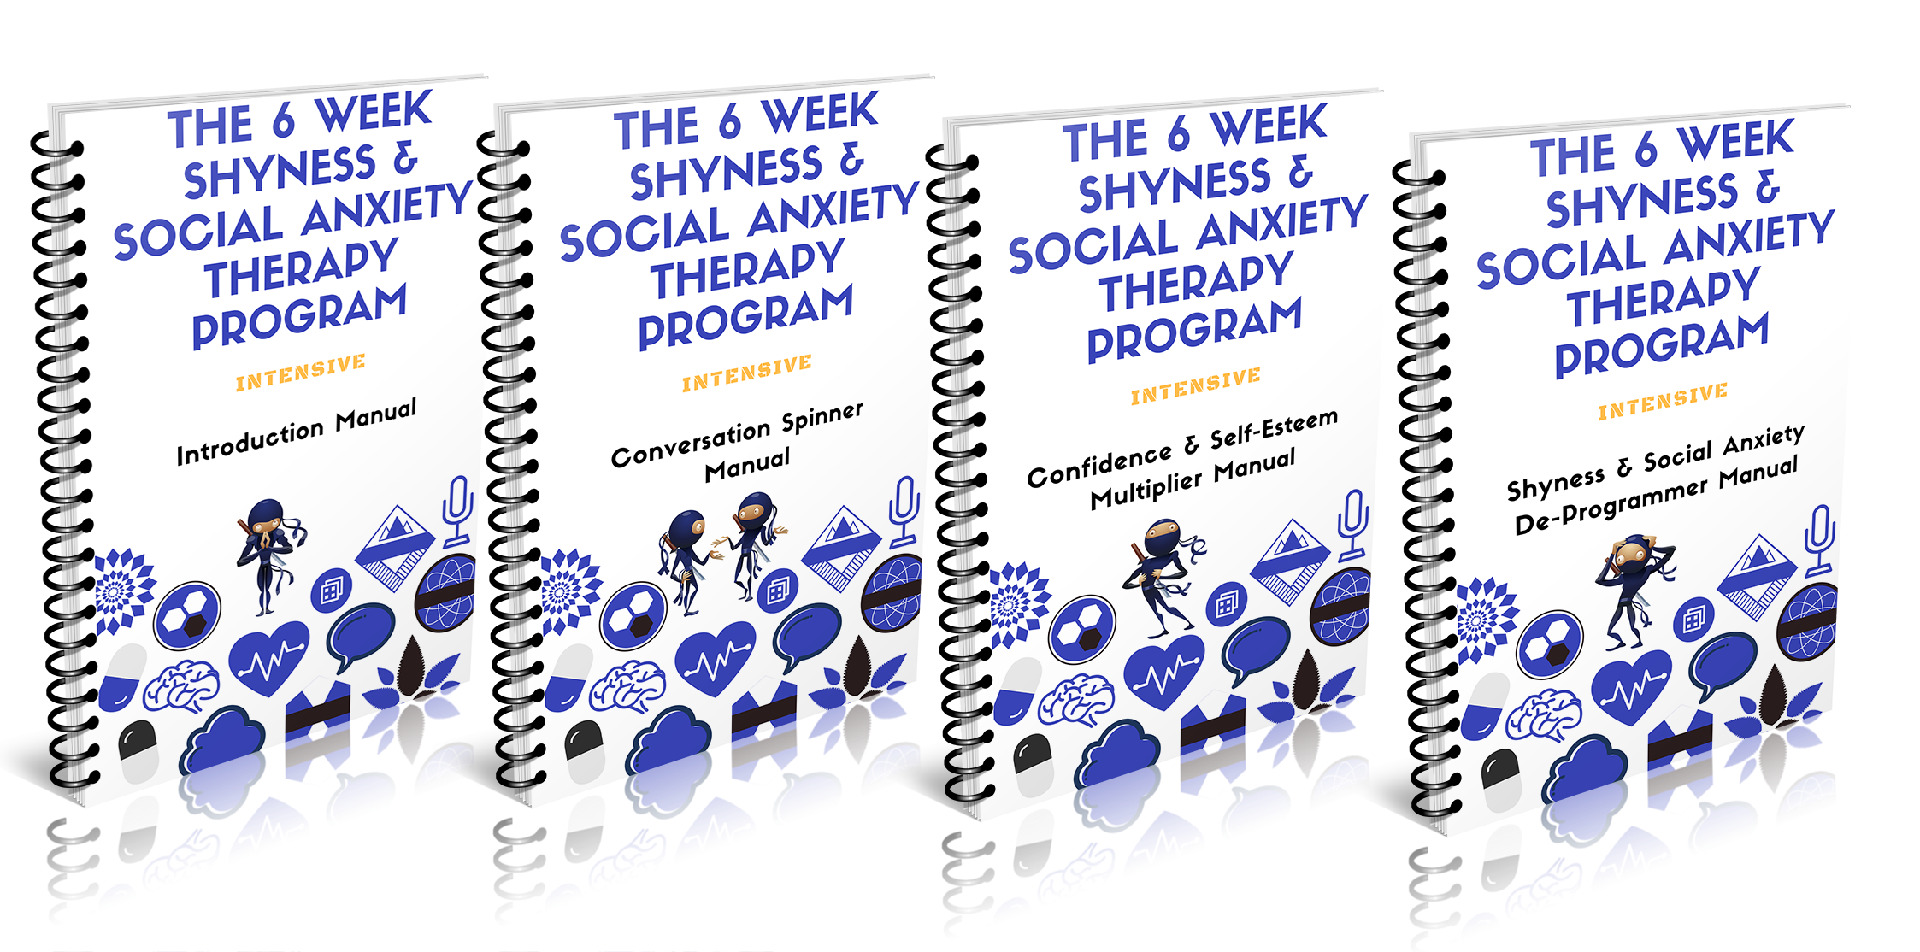 a combination image of the four manuals of the 6 week shyness and social anxiety therapy program about how to overcome social anxiety and shyness